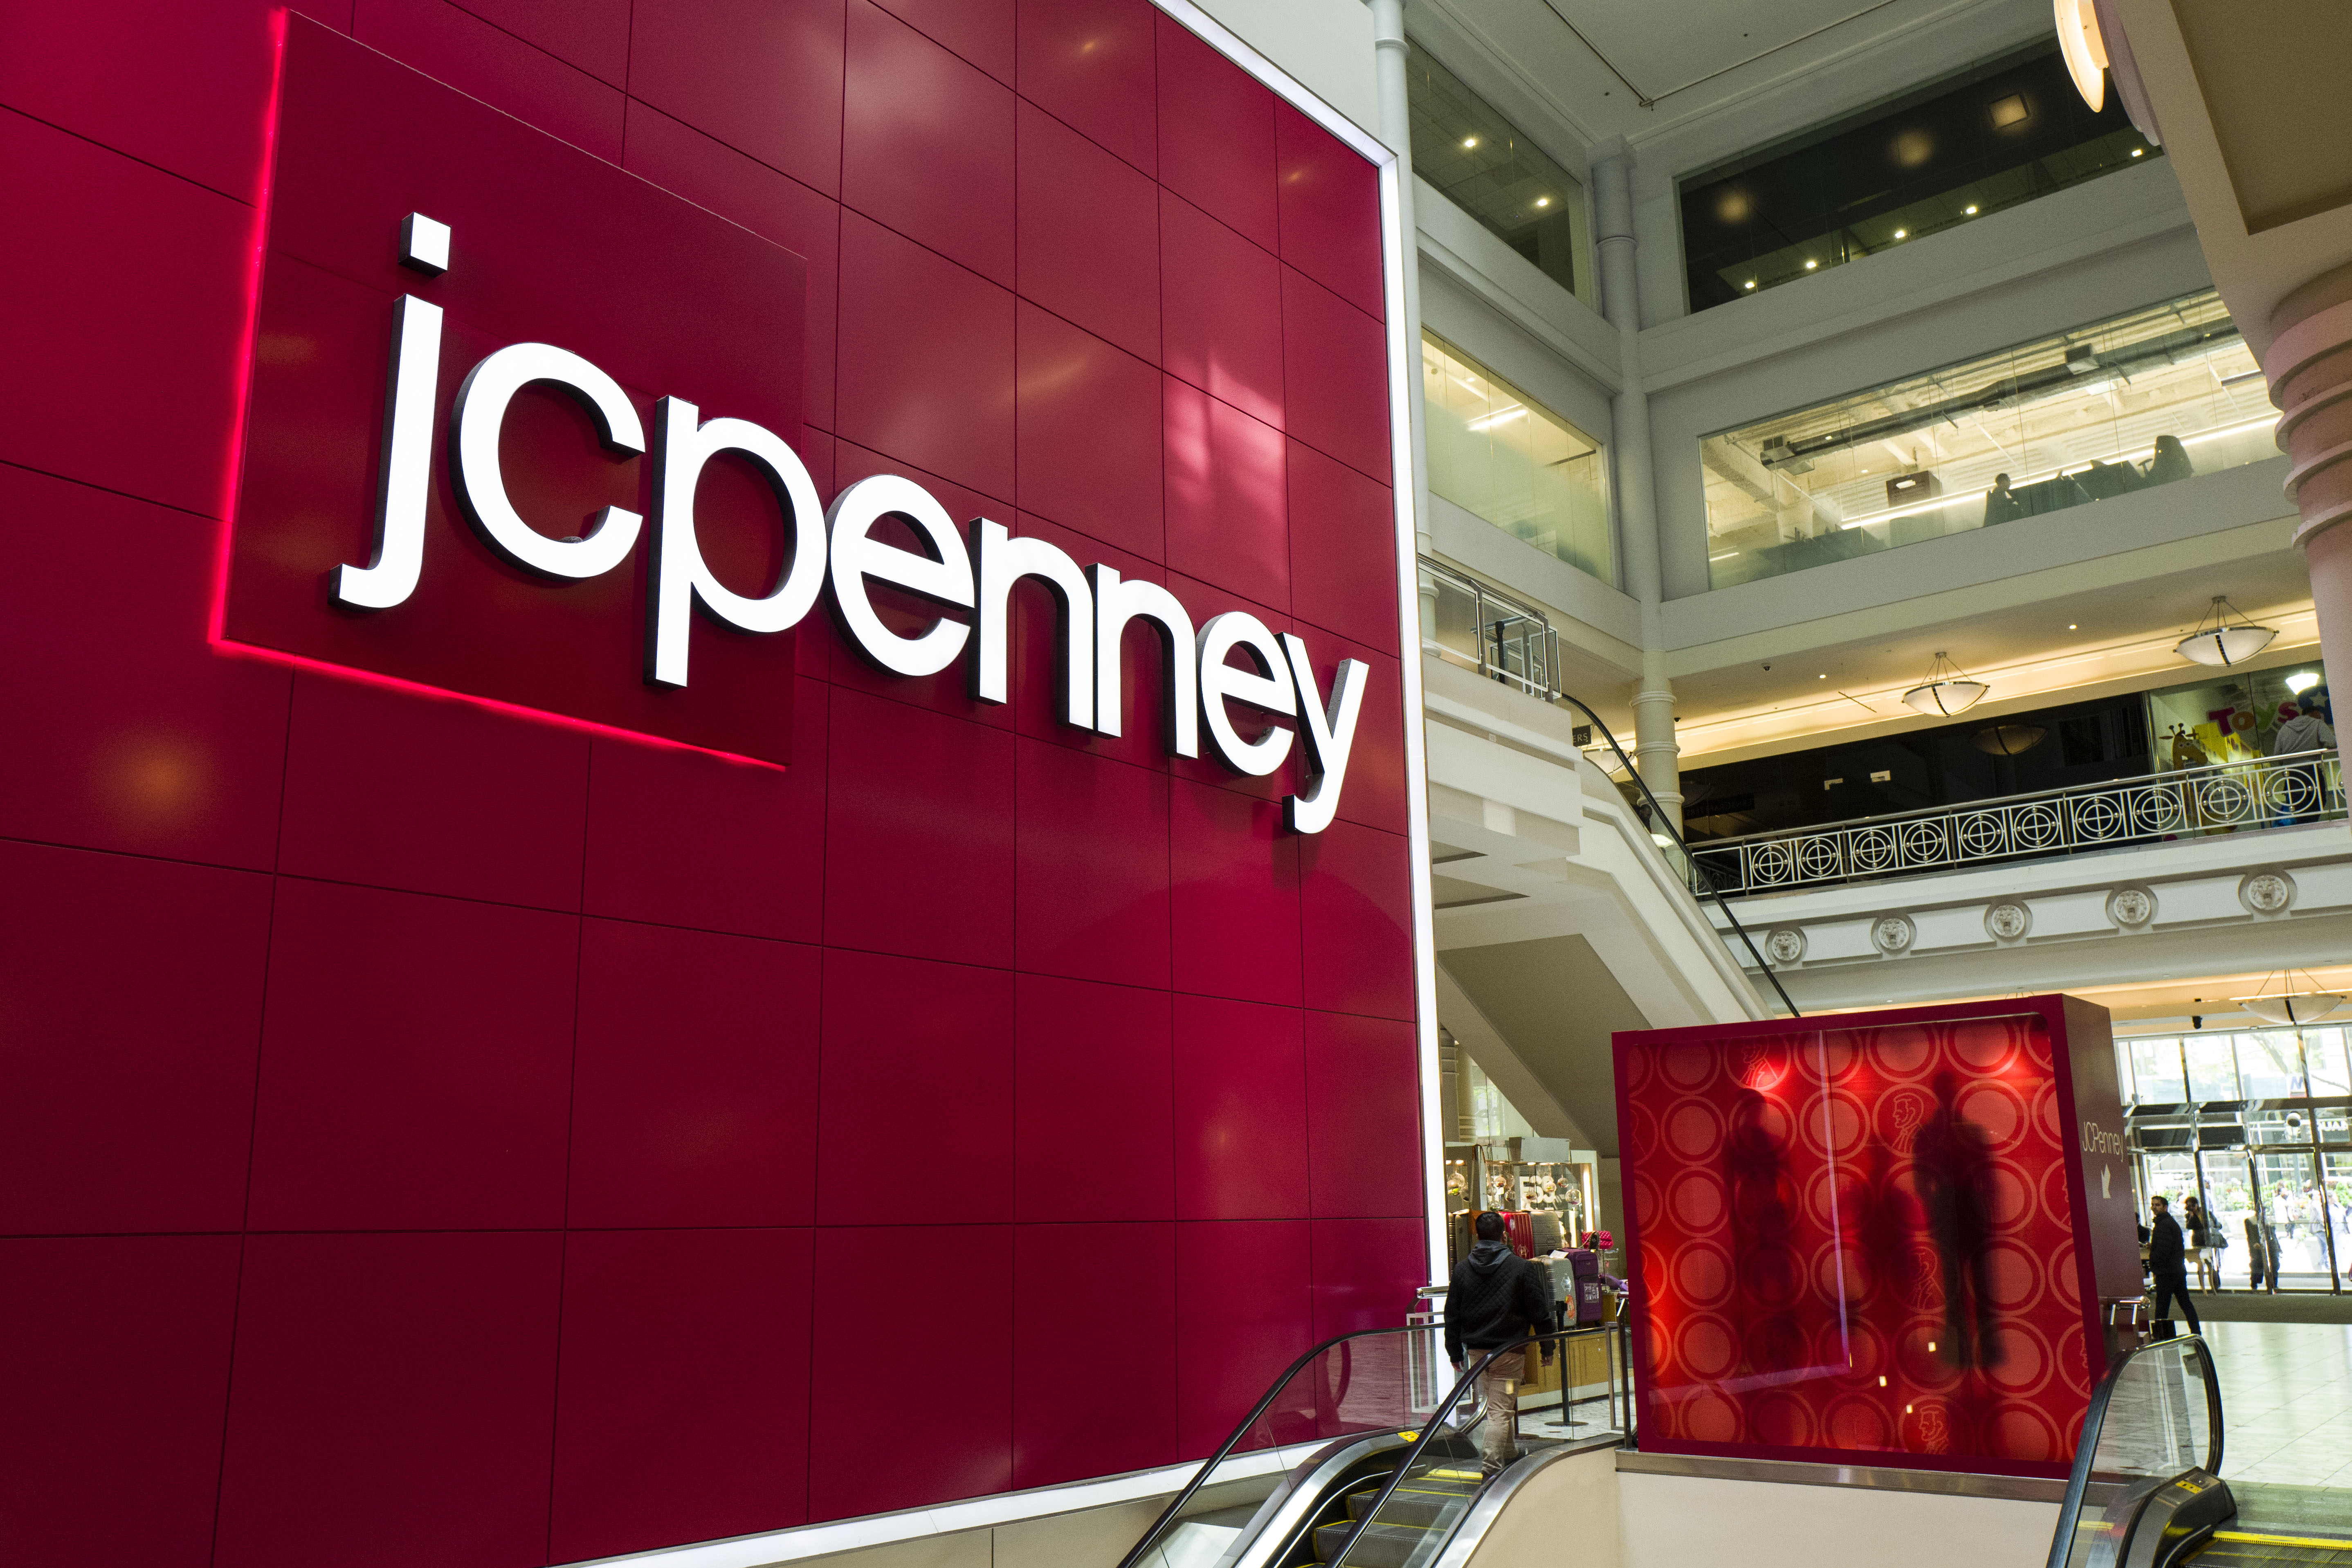 Jcpenney Releases Black Friday Ad With Sneak Peek At Deals